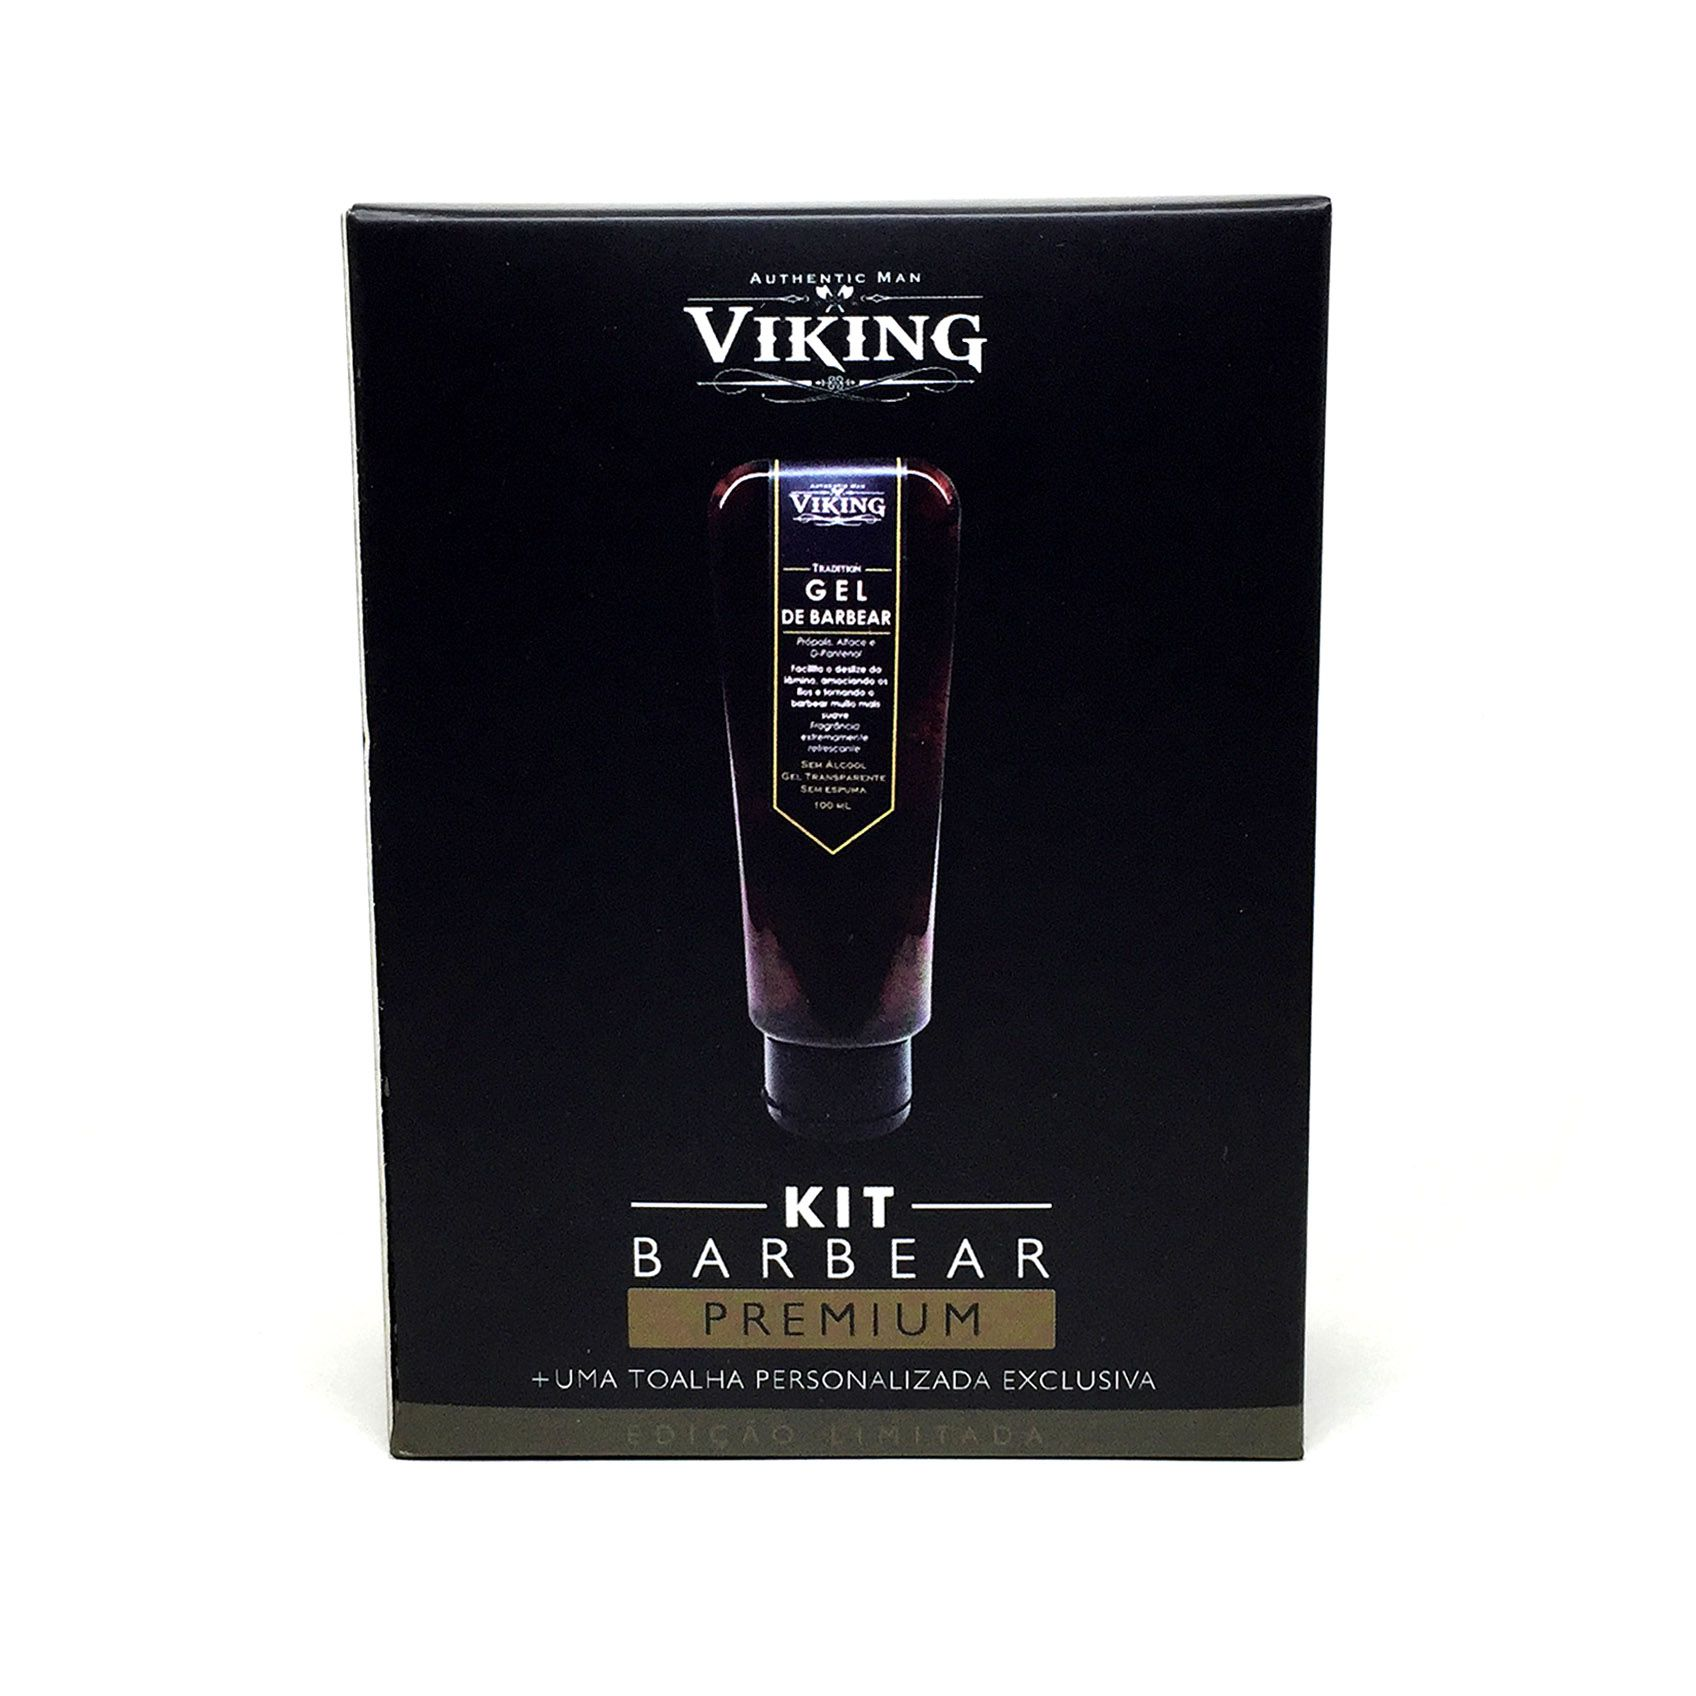 Kit Barbear Premium - Gel de Barbear e Toalha  - Viking